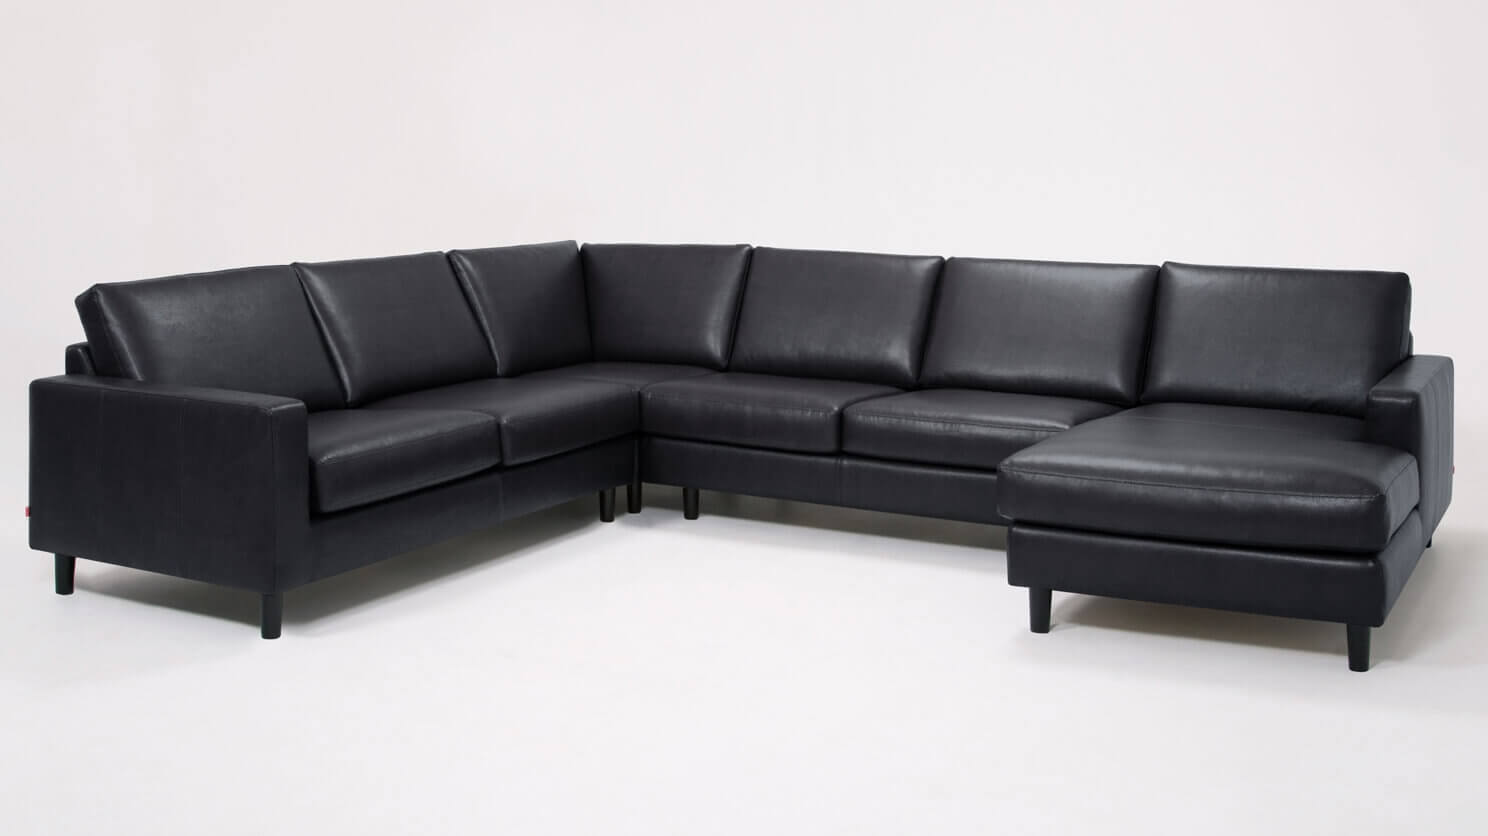 Focus On Furniture Sofa Bed Oskar 4 Piece Sectional Sofa With Chaise Leather